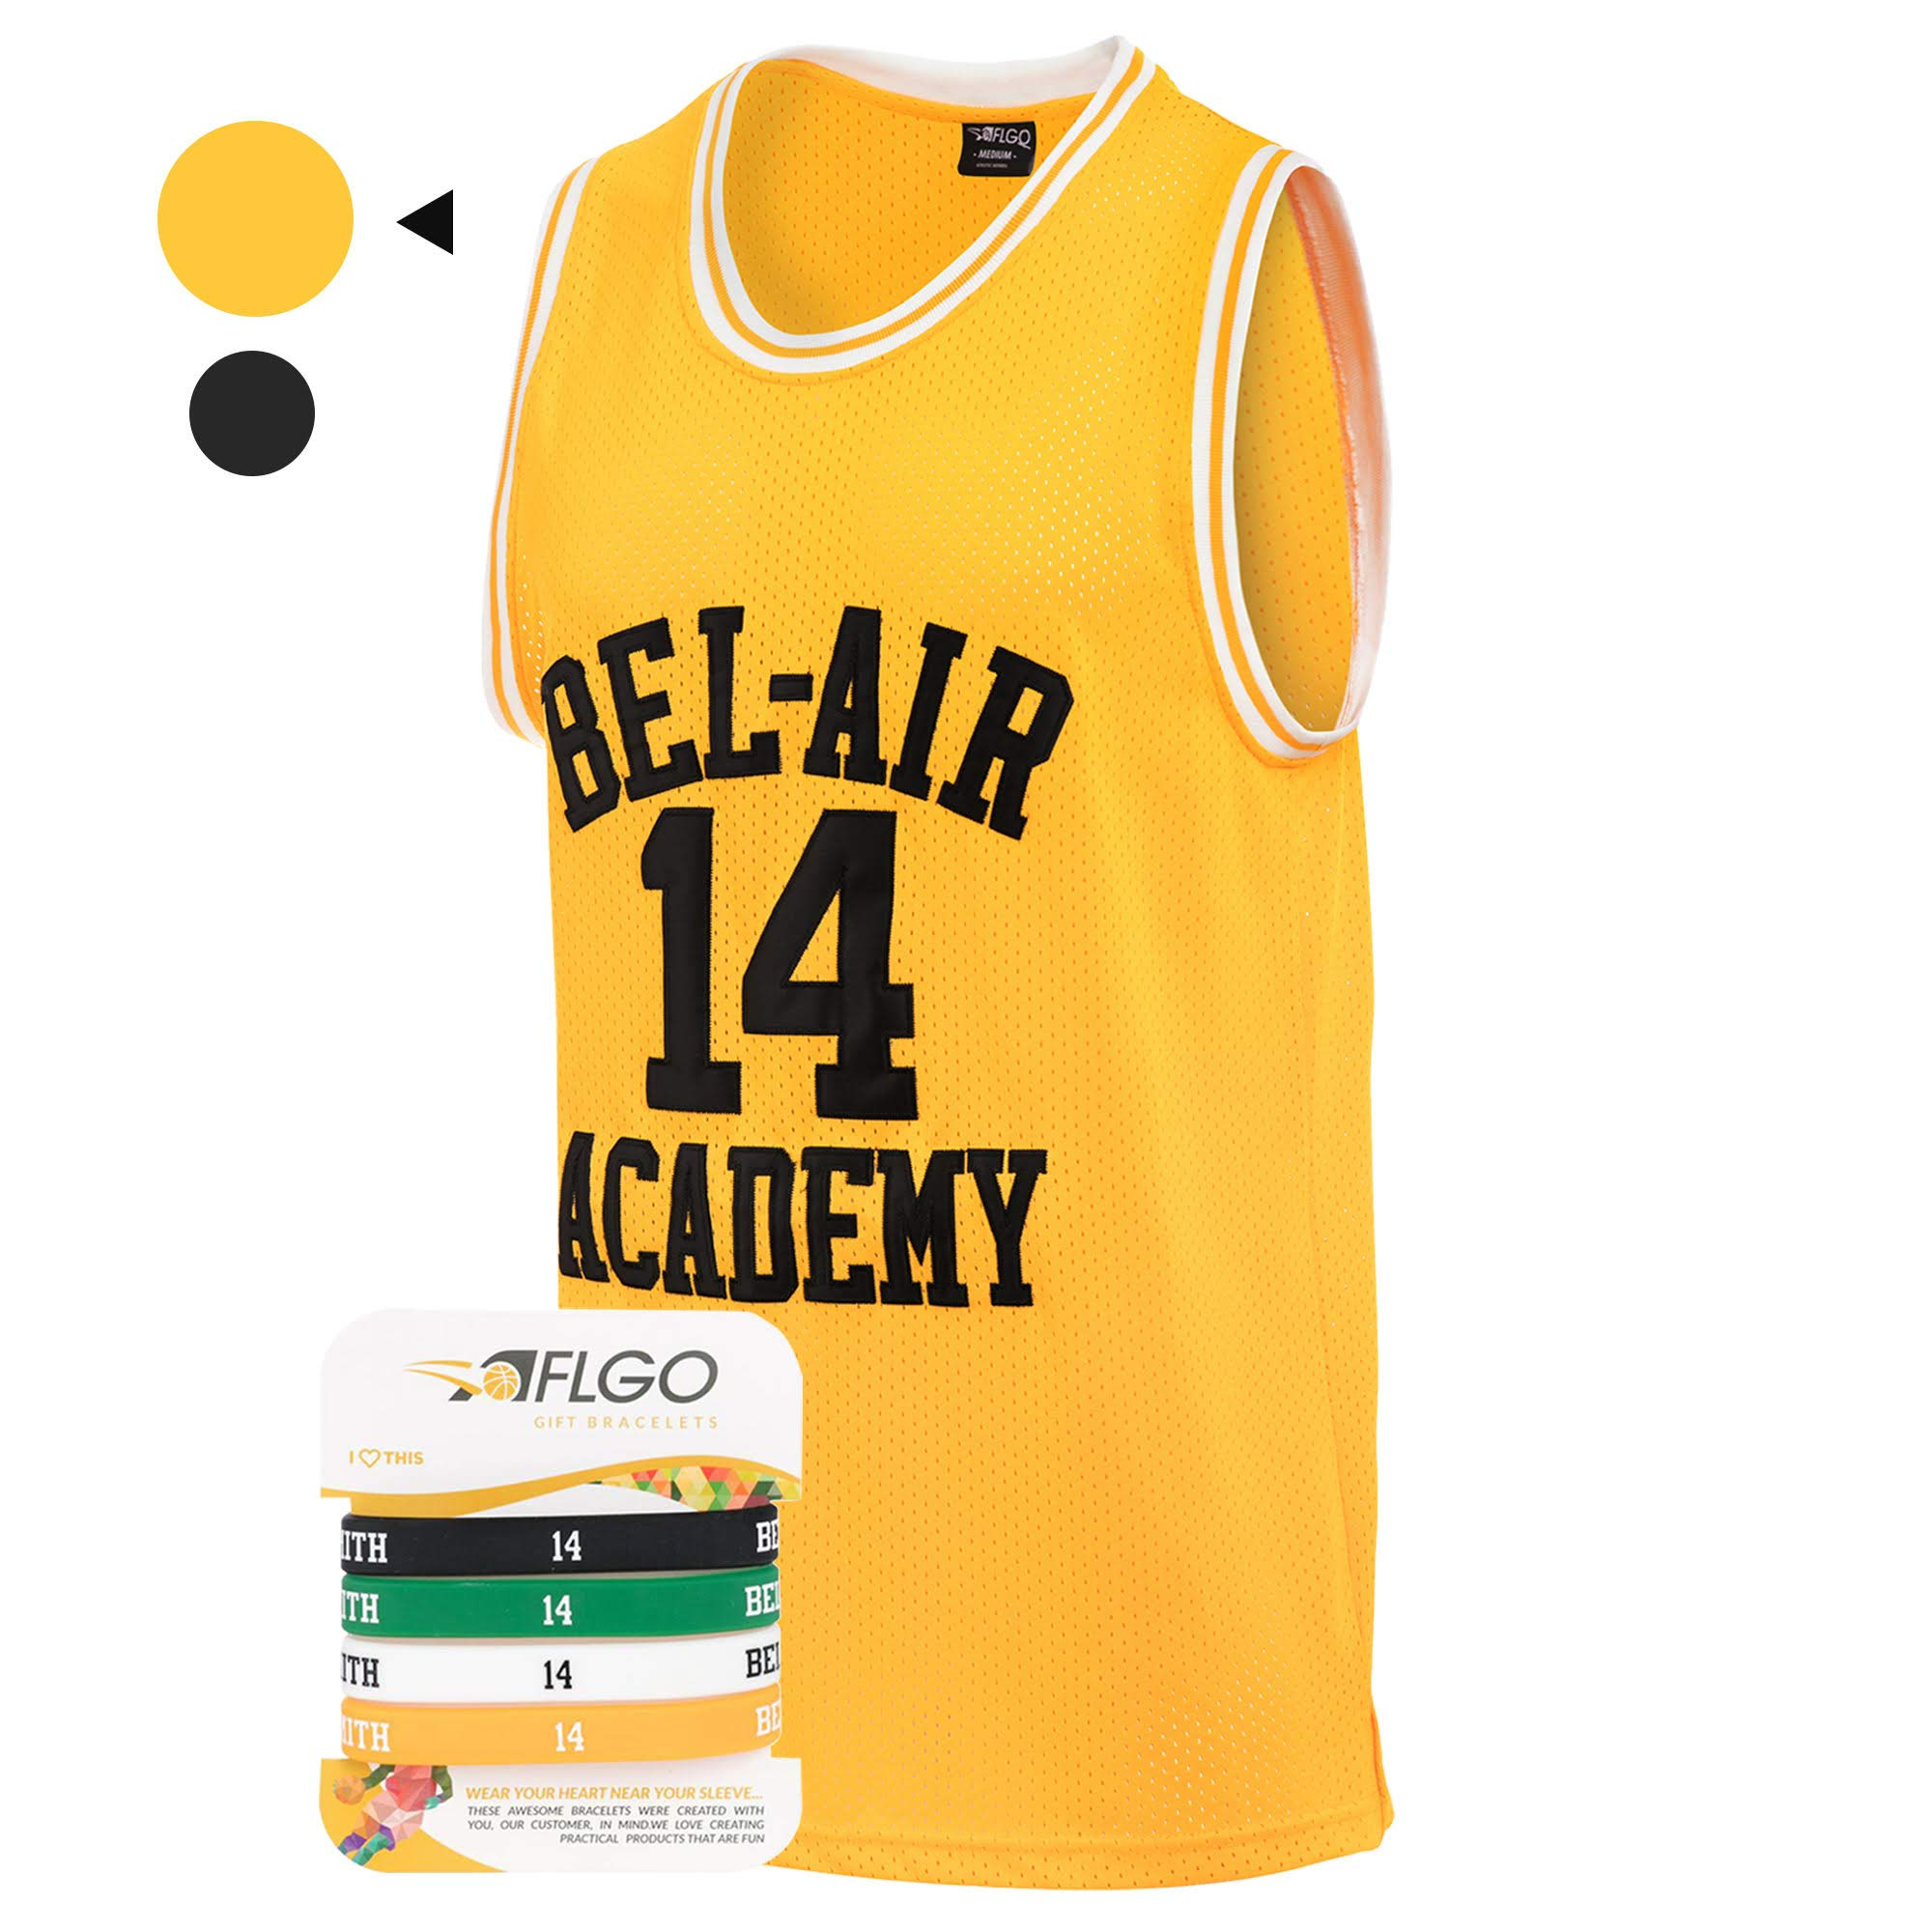 925ca4cd7cc29 AFLGO Fresh Prince of Bel Air  14 Basketball Jersey S-XXXL – 90 s Clothing  Throwback Will Smith Costume Athletic Apparel Clothing Top Bonus Combo Set  with ...